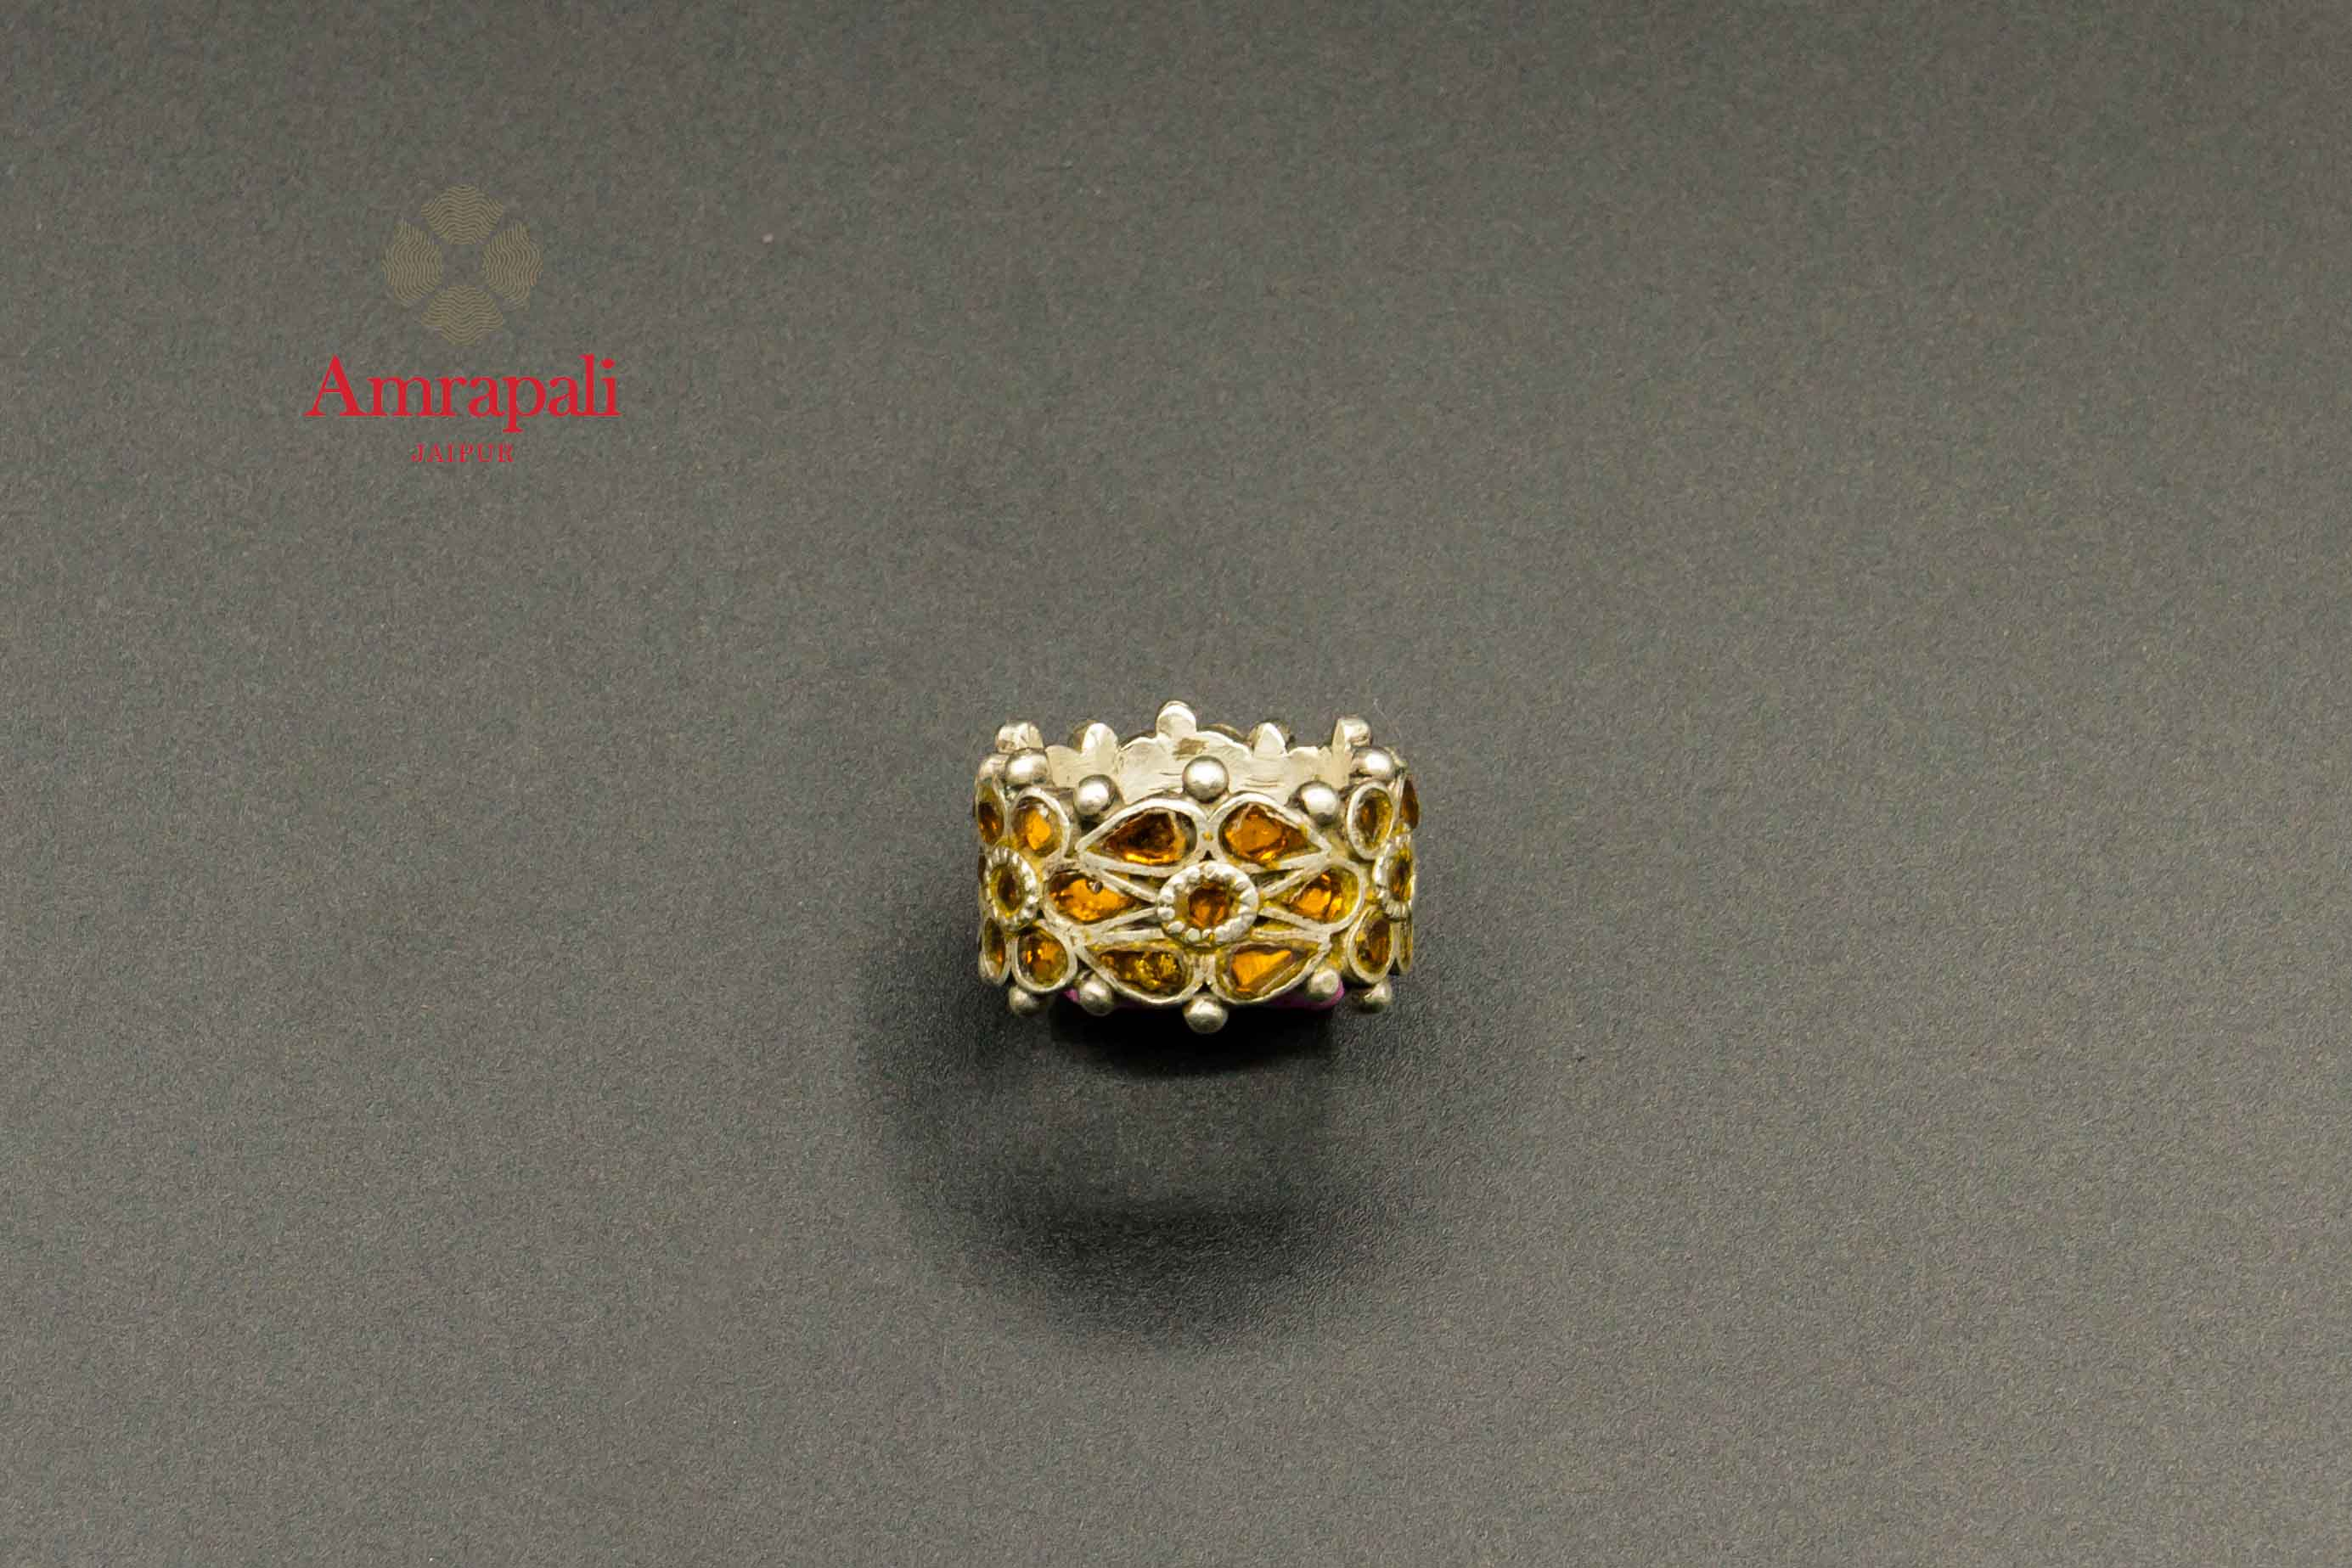 Shop Amrapali yellow glass silver ring online in USA. Raise your traditional fashion quotient on special occasions with exquisite Indian jewelry from Pure Elegance Indian clothing store in USA. Enhance your look with silver gold plated jewelry, silver jewellery available online.-flatlay